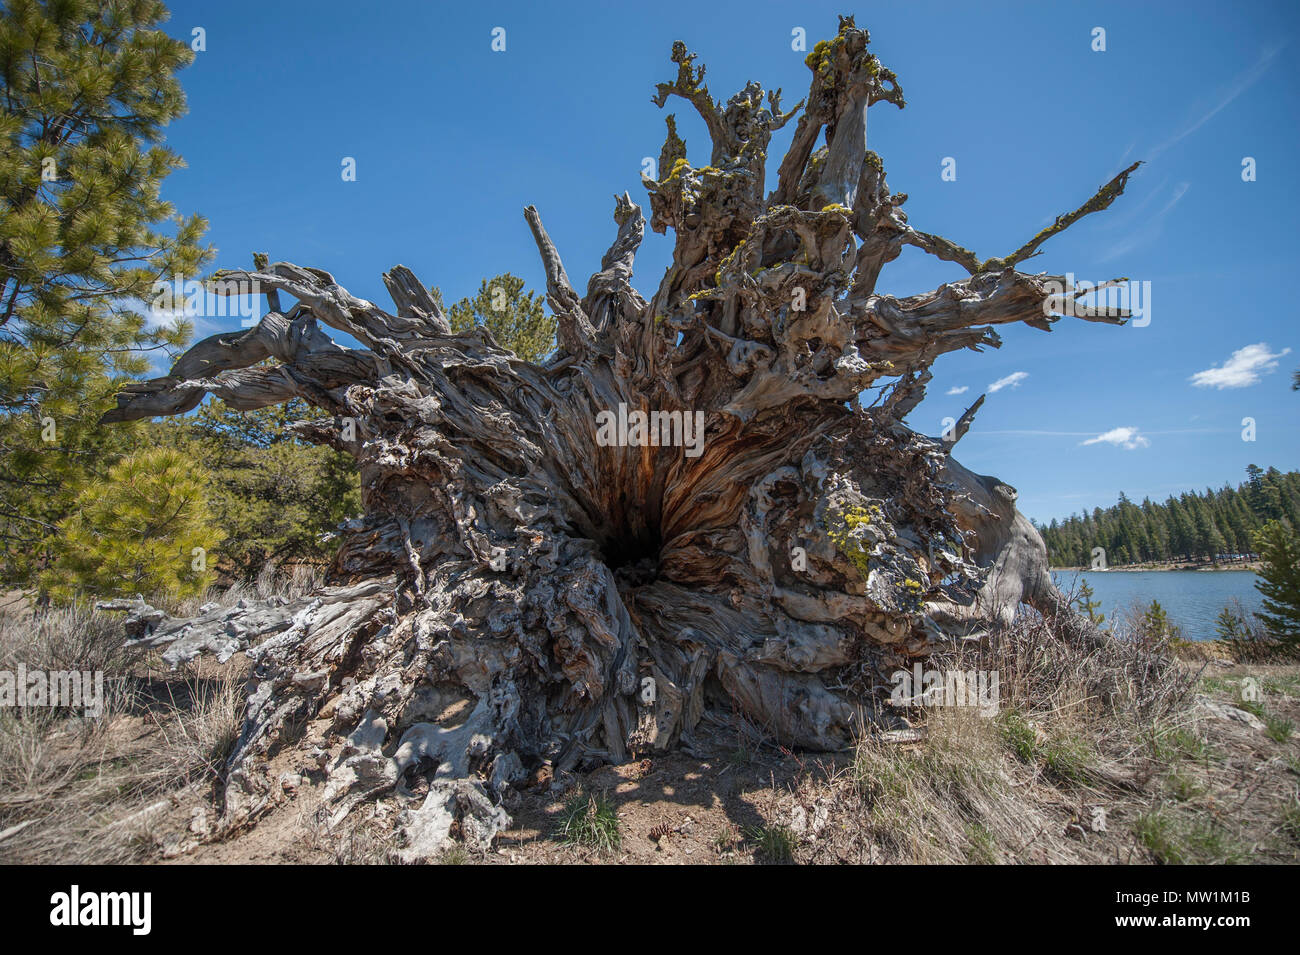 Looking up into the hollow trunk and root wad of a long-fallen gigantic Ponderosa Pine - Stock Image